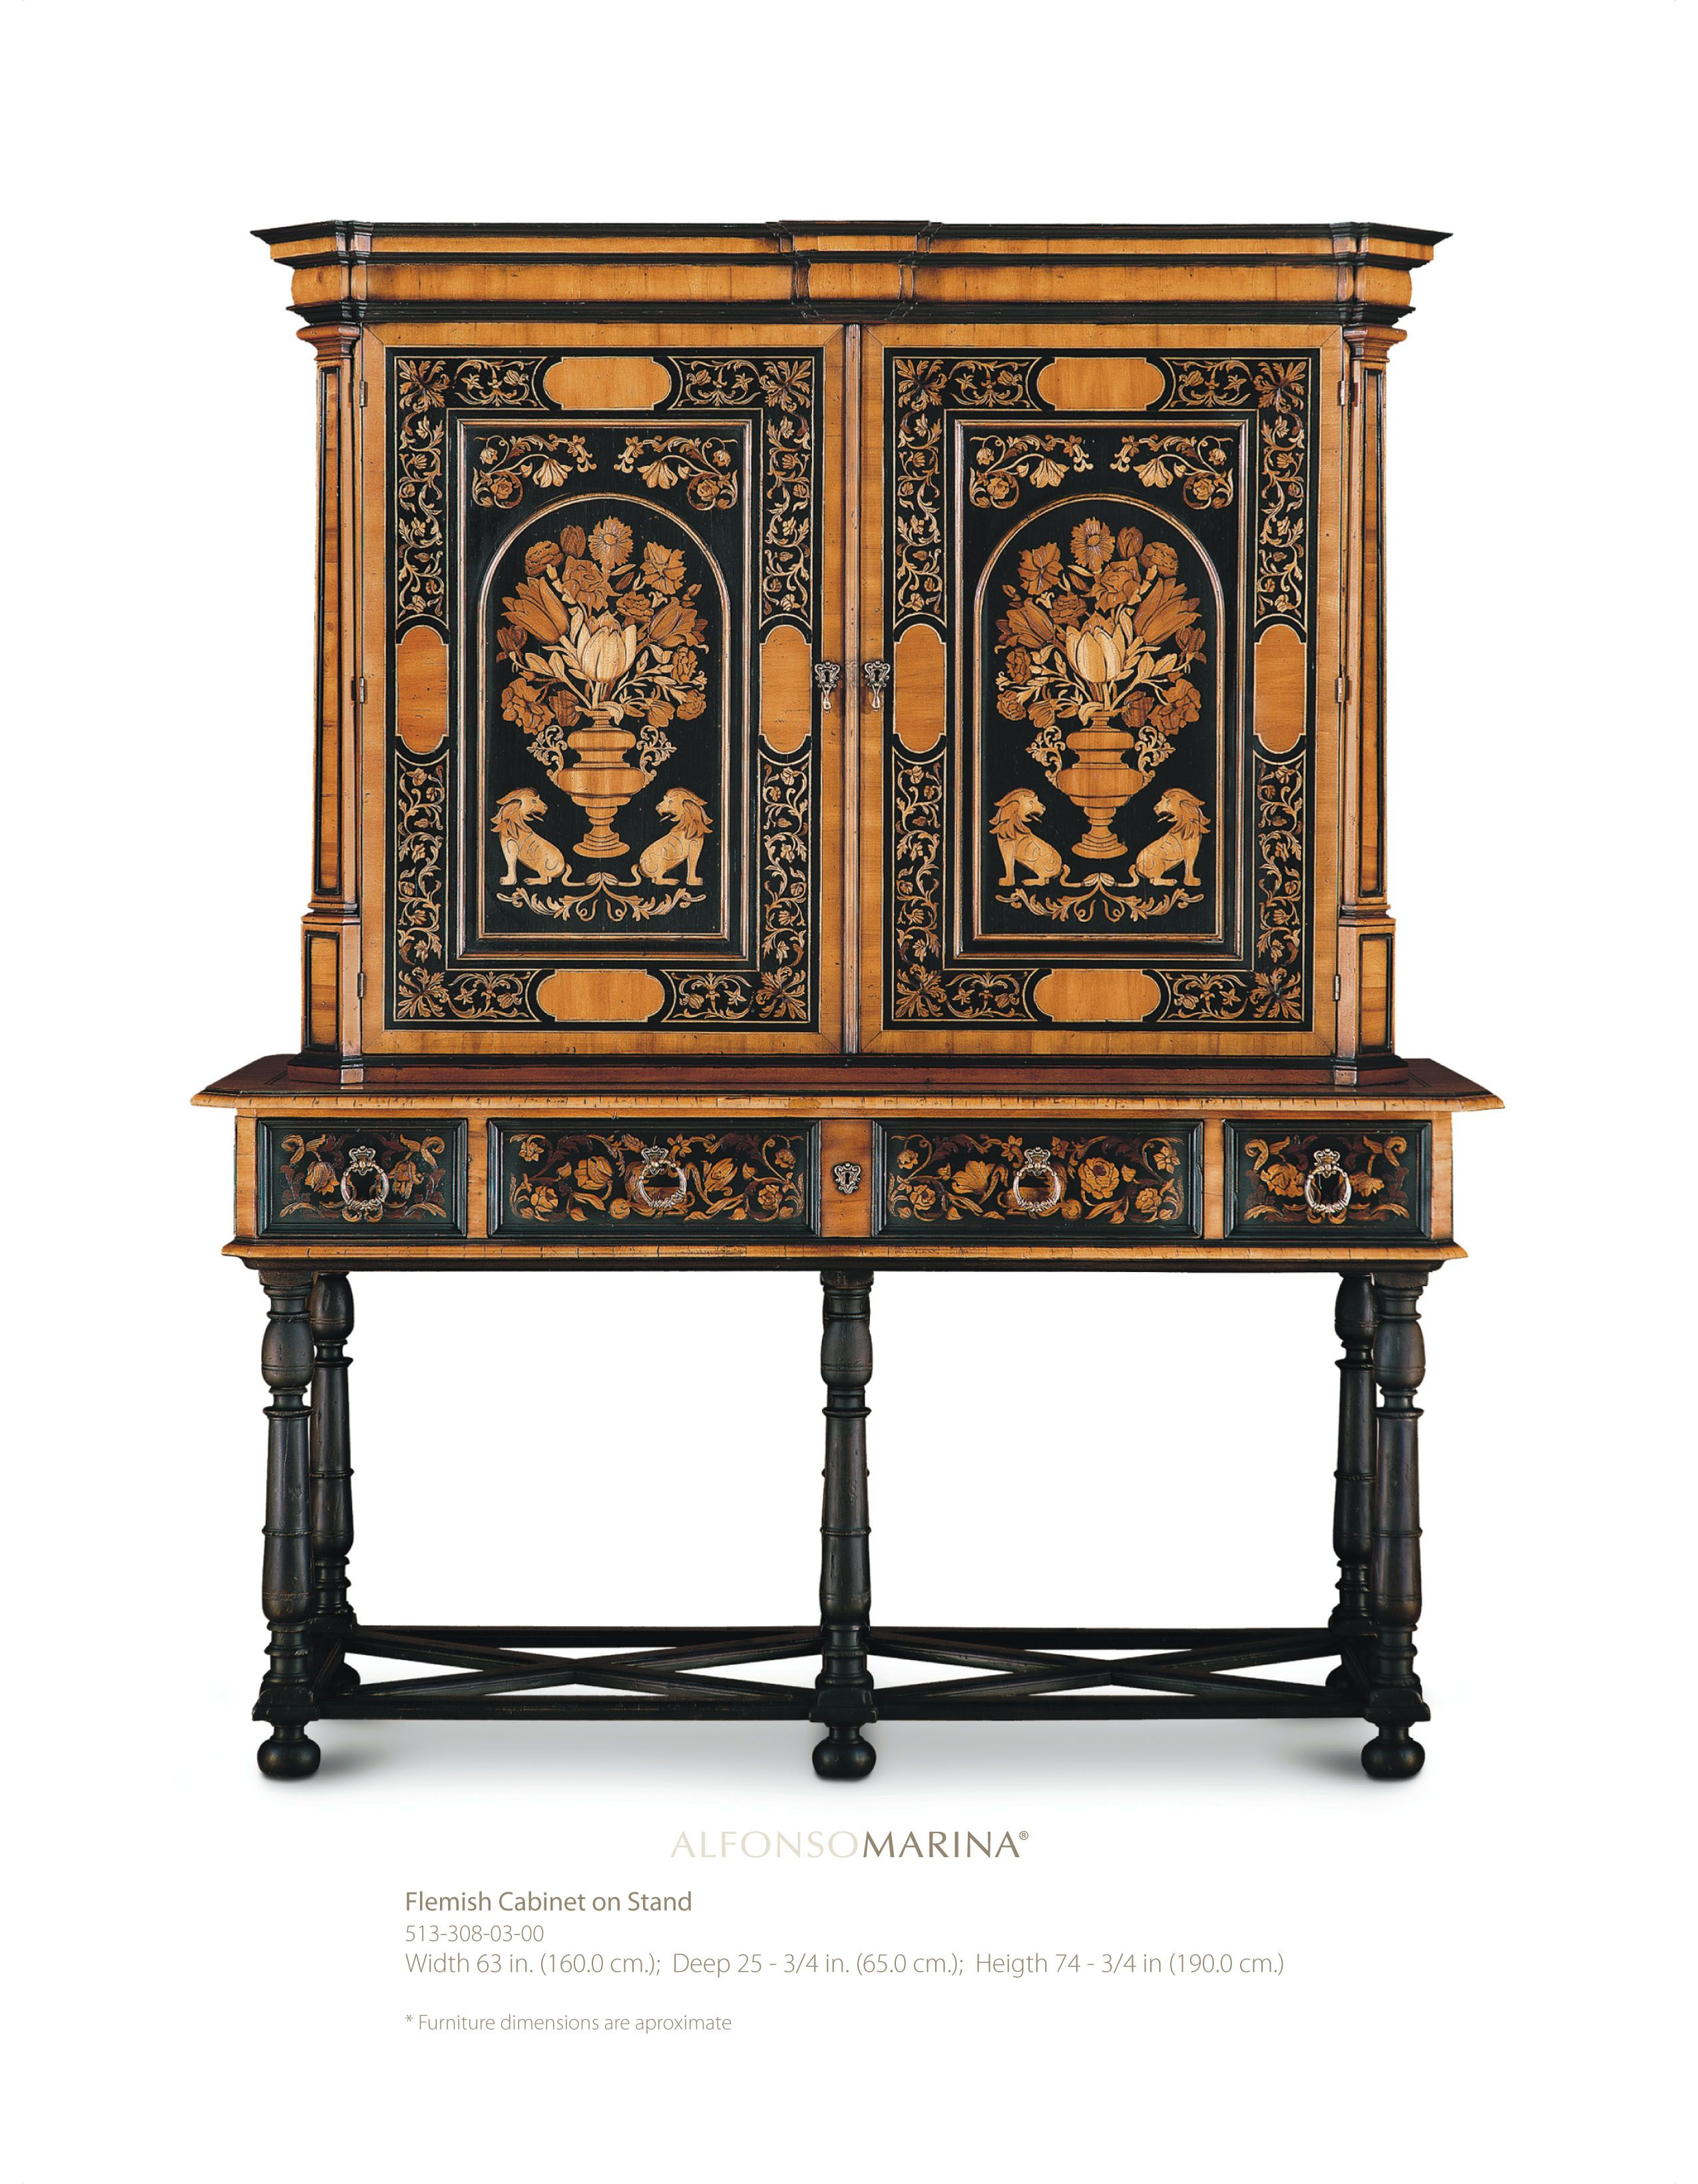 Flemish cabinet on stand by alfonso marina ebanista for Alfonso marina ebanista furniture